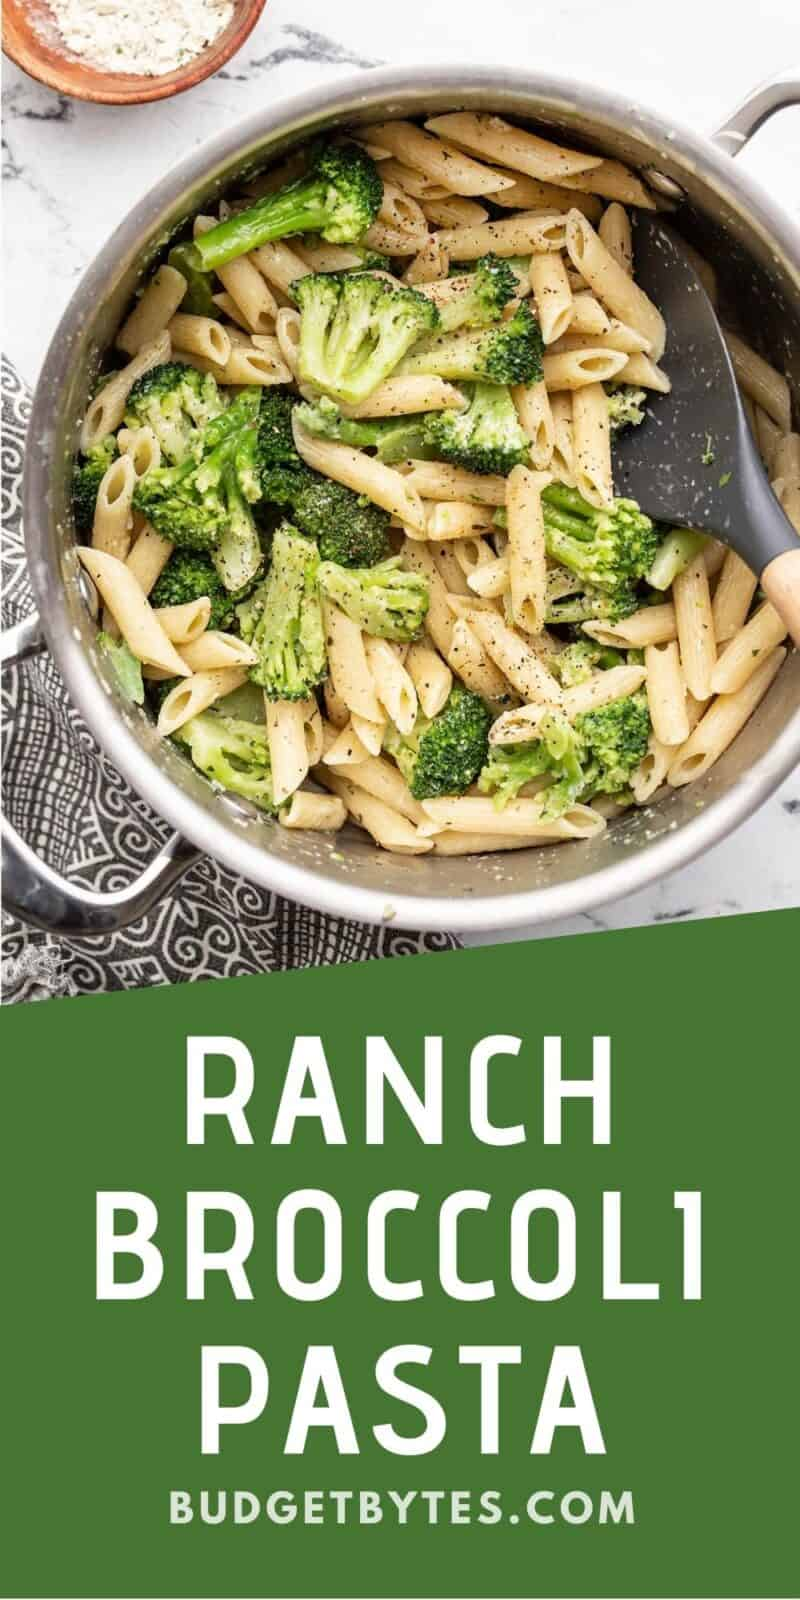 Ranch broccoli pasta in the pot, title text at the bottom